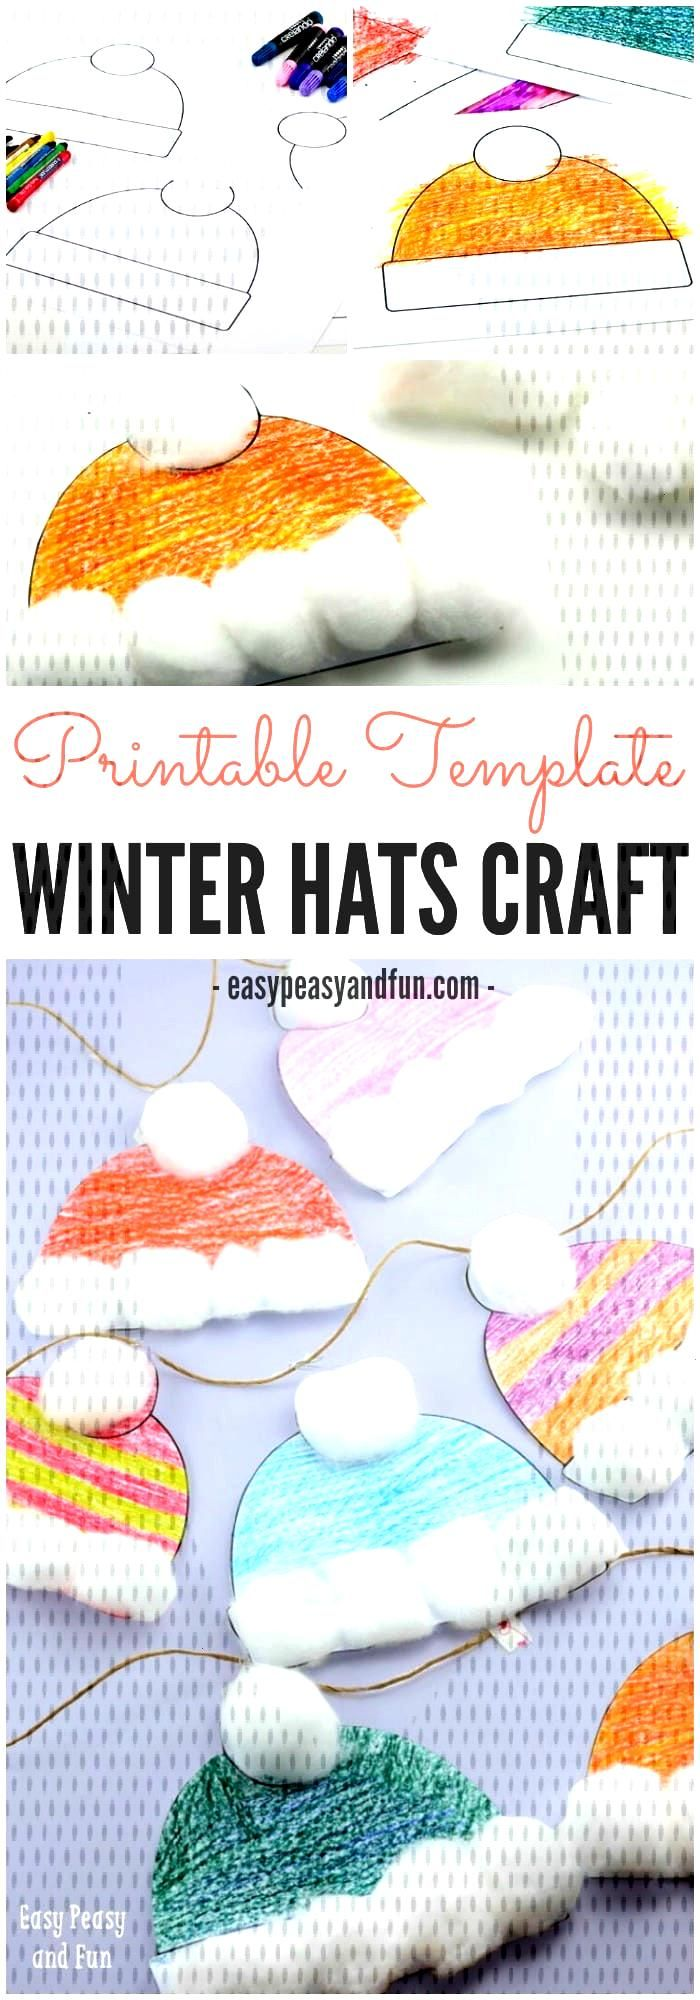 Winter Hats Craft for Kids - Perfect Classroom Craft - Easy Peasy and Fun - Winter Hats Craft for